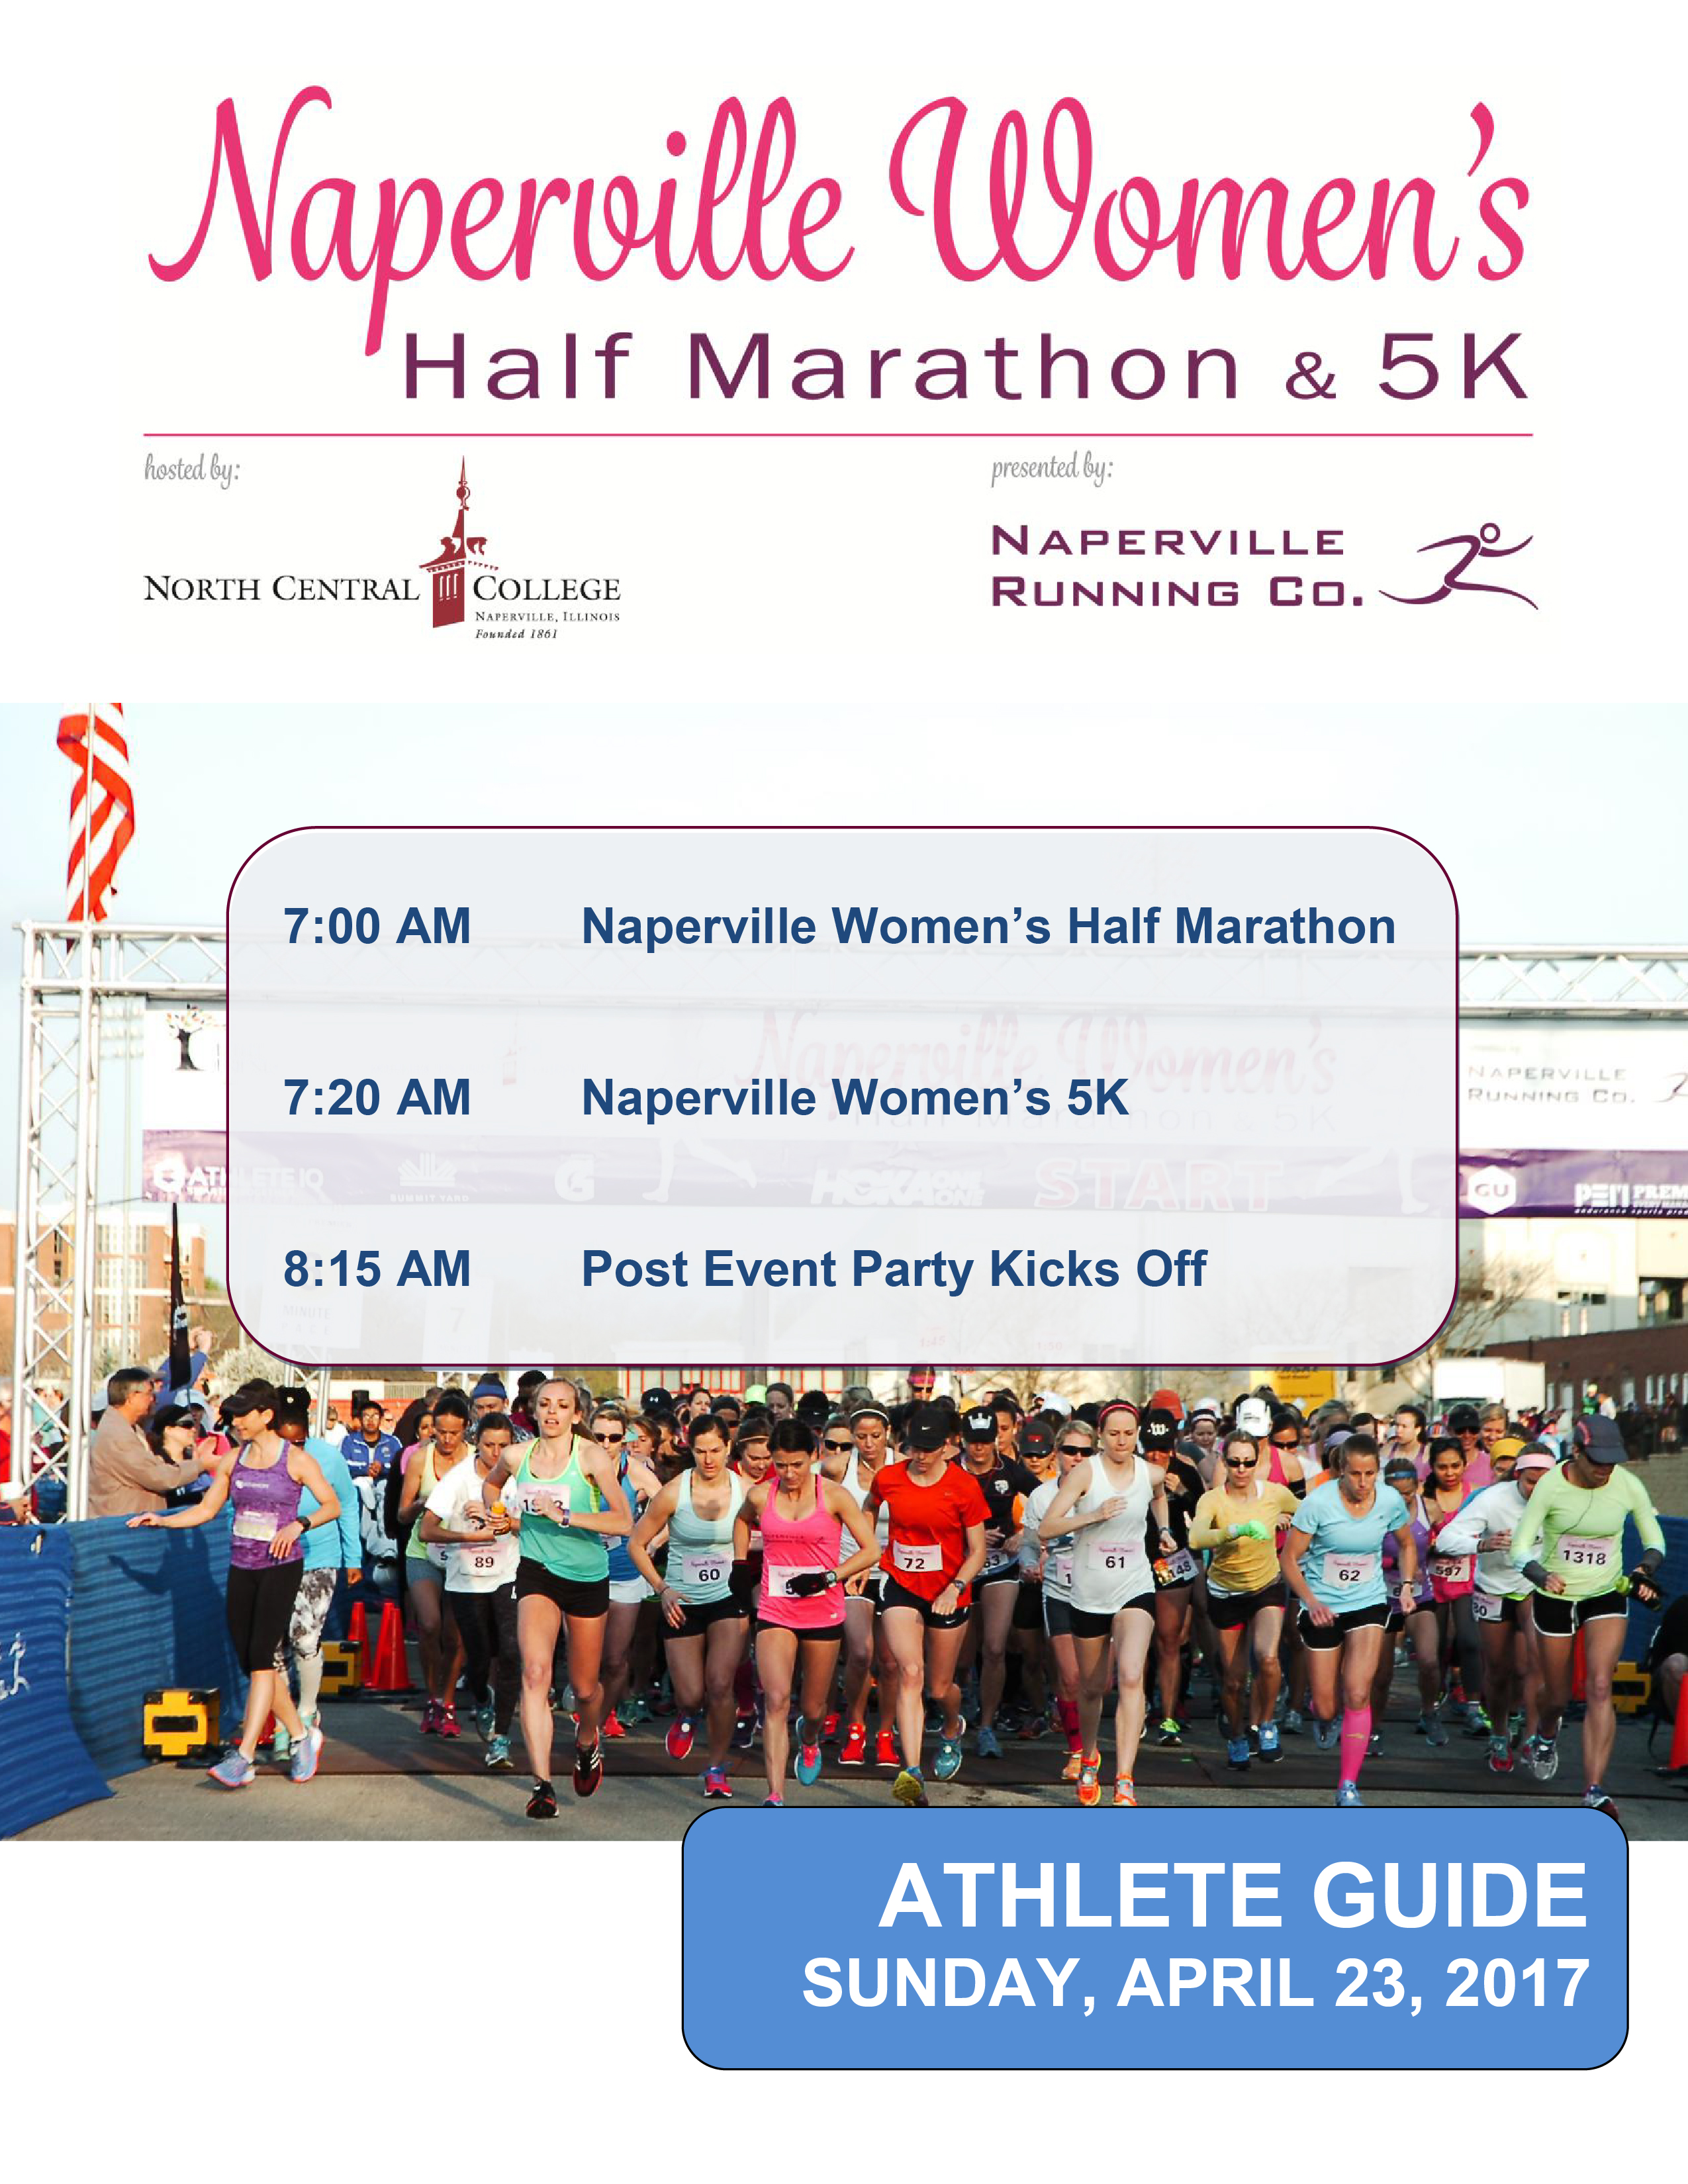 2017 Naperville Women's Half Marathon & 5K Athlete Guide